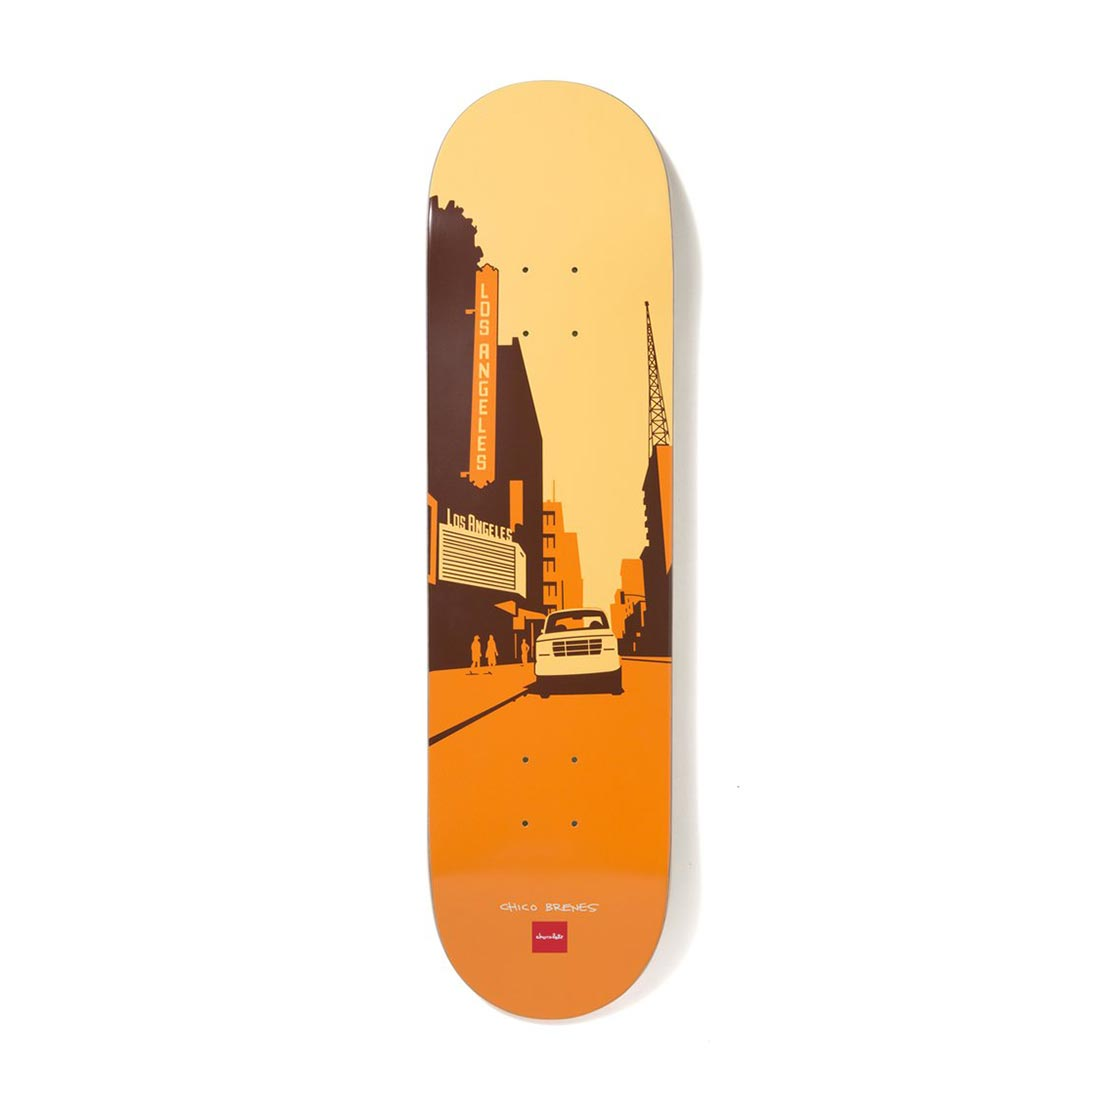 "Chocolate Skateboards The City Series Chico Brenes 8.25"" Deck"